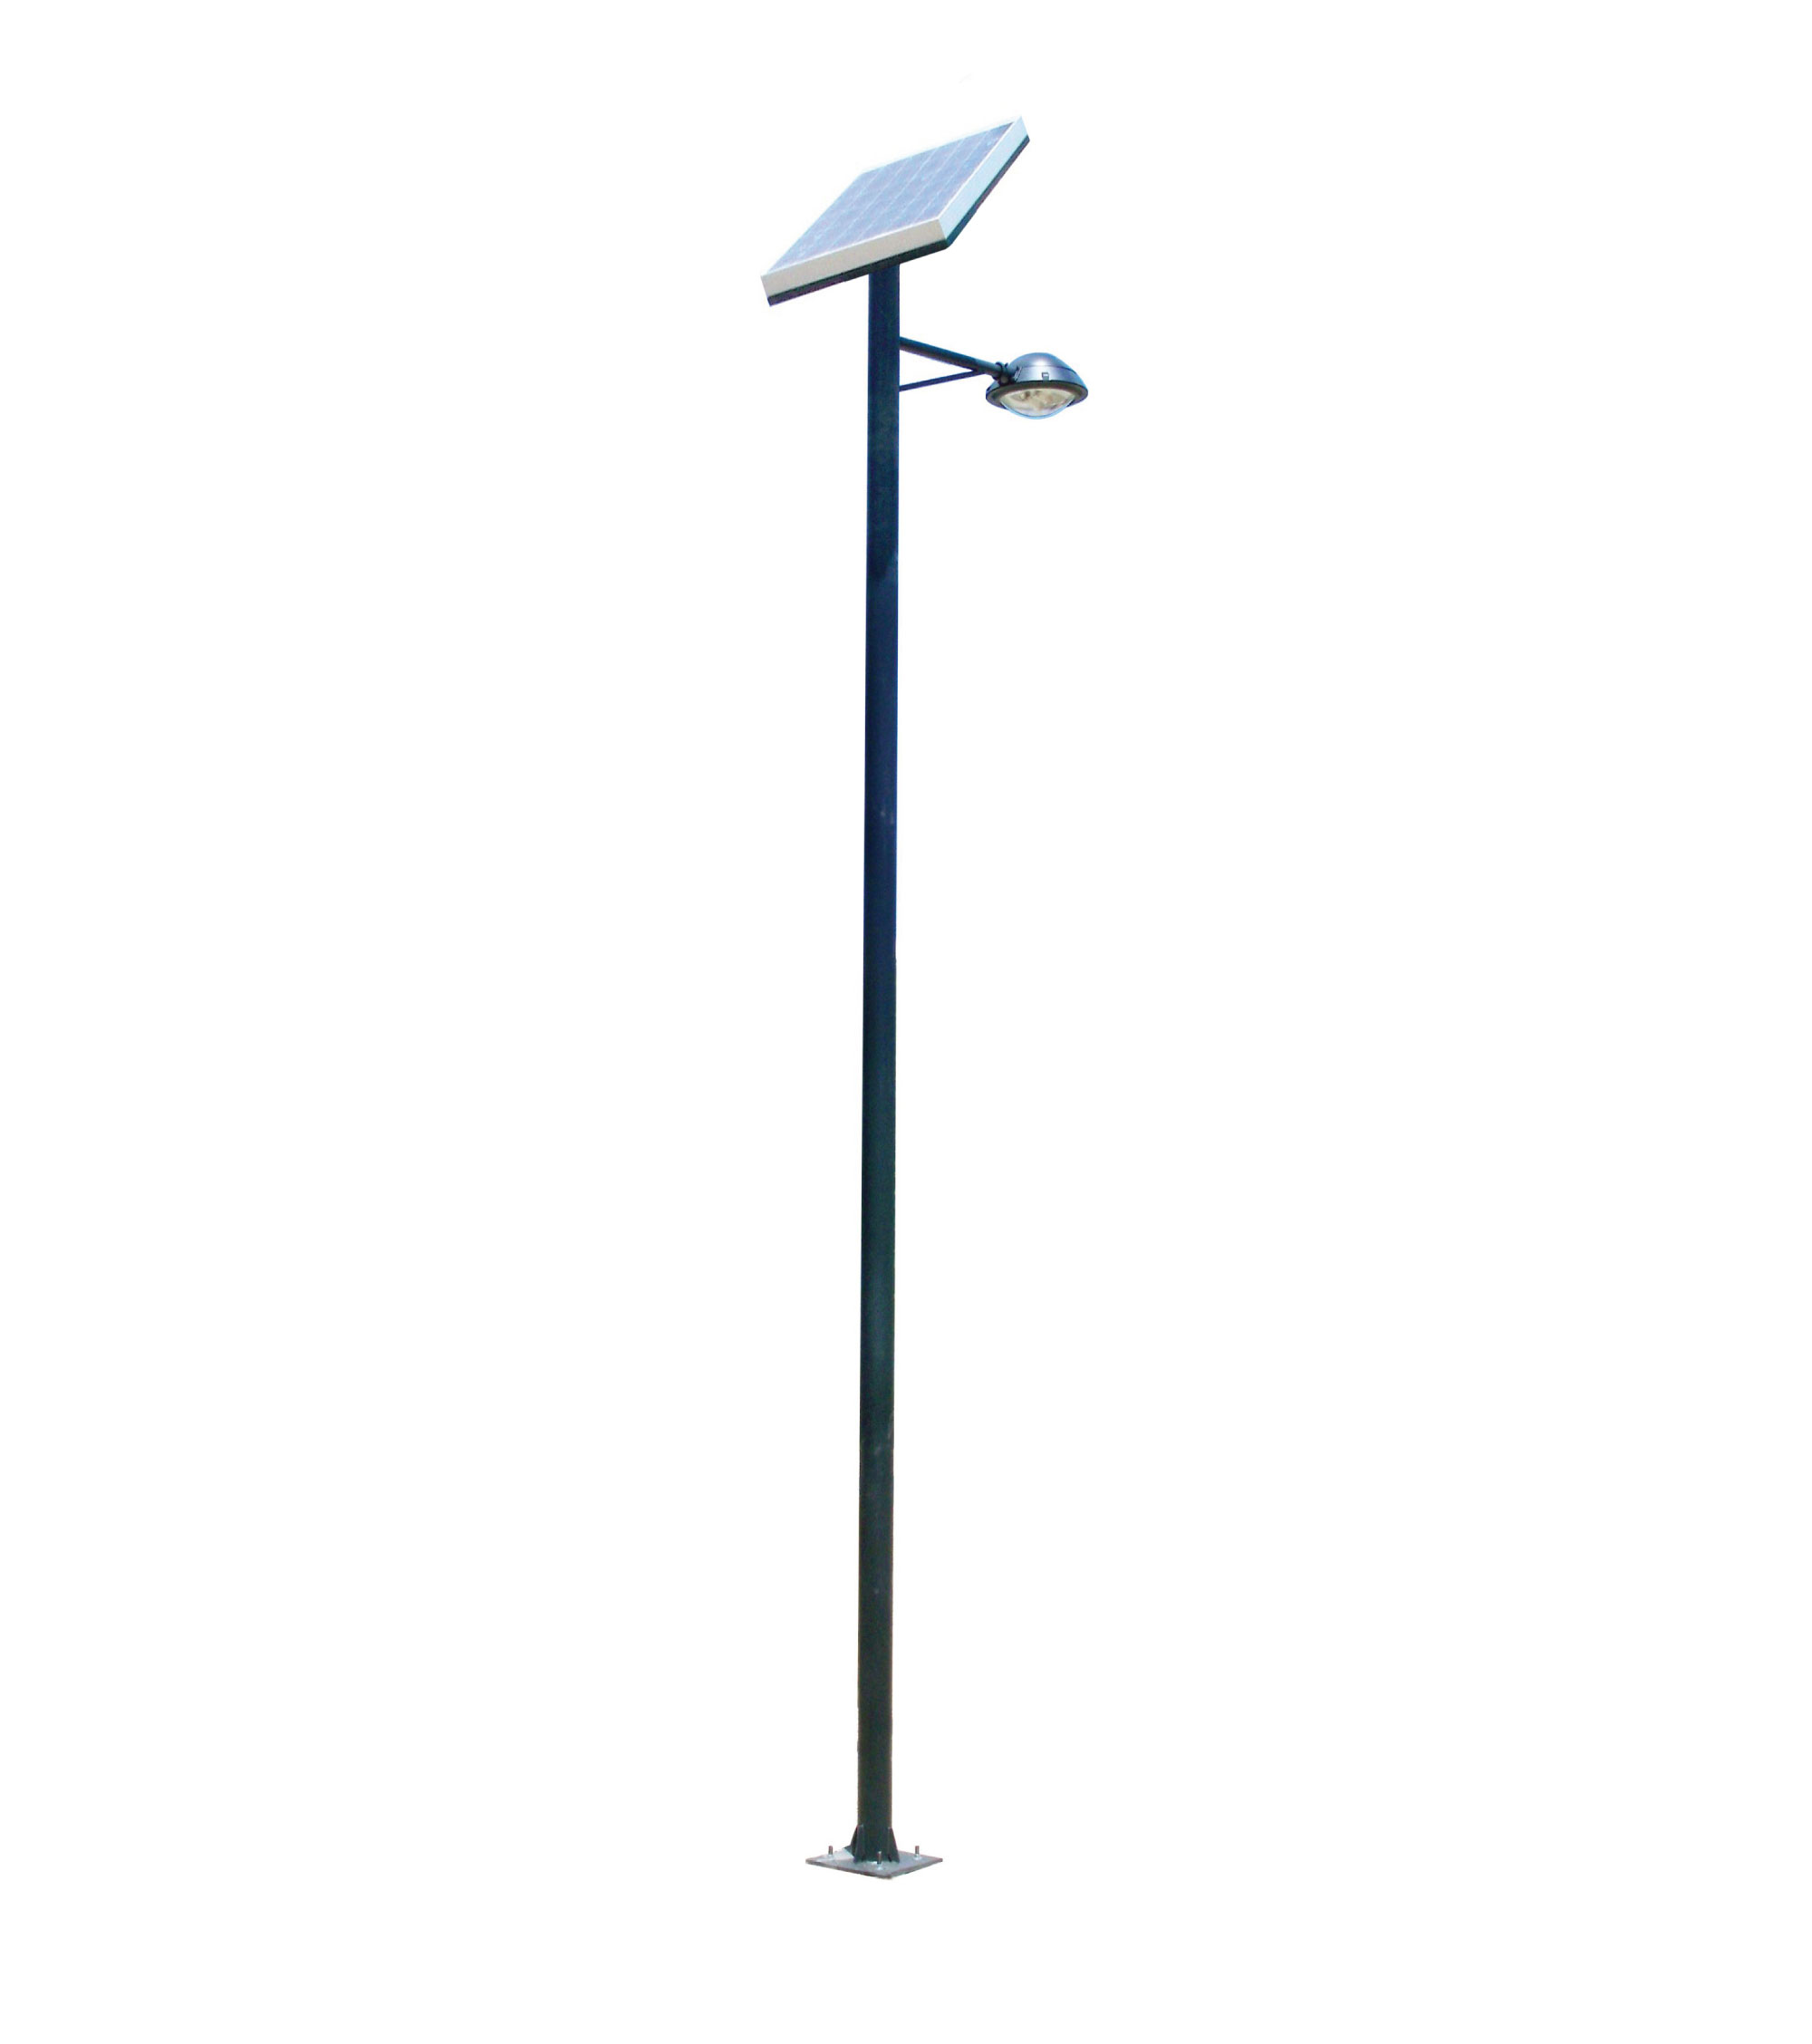 lighting titan fixtures led street optecolux product solutions light